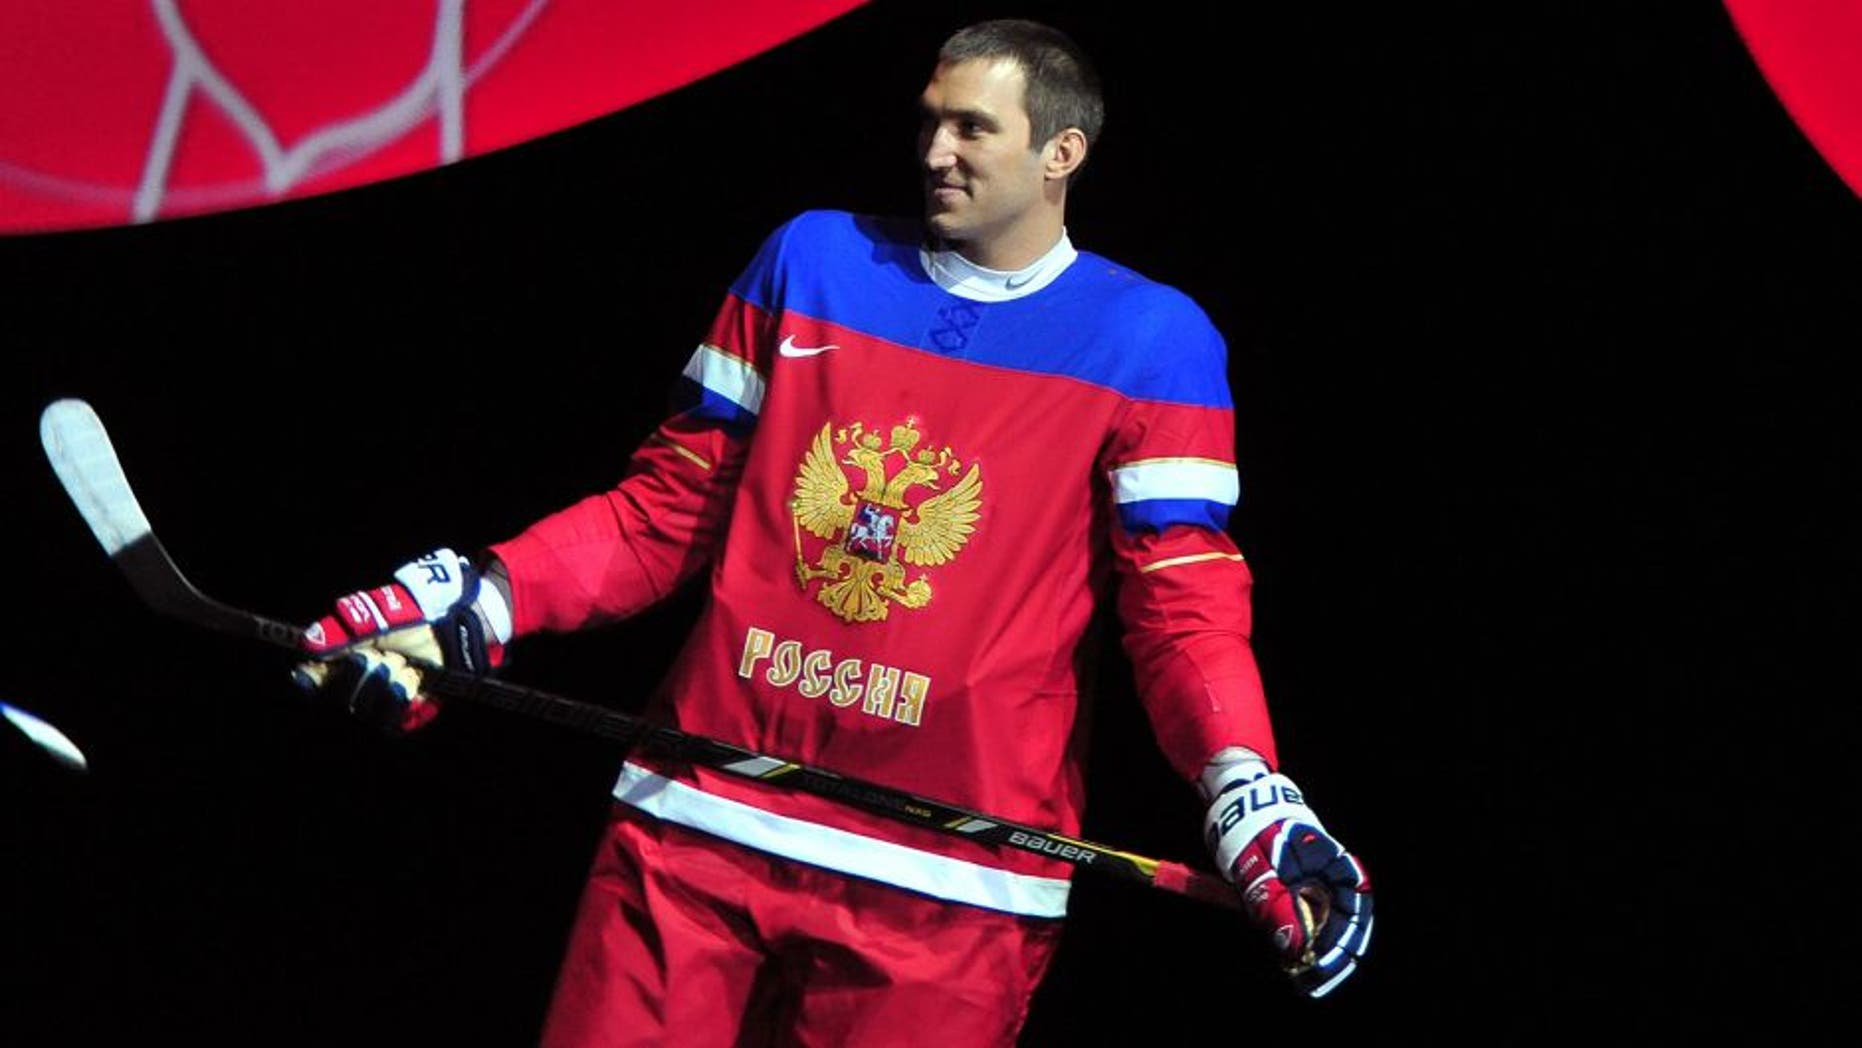 Russian national ice hockey team and the Washington Capitals forward Alexander Ovechkin introduce the new Russian Ice Hockey Olympic team uniform in Moscow, on August 26, 2013. AFP PHOTO / ALEXANDER KAZAKOV (Photo credit should read ALEXANDER KAZAKOV/AFP/Getty Images)